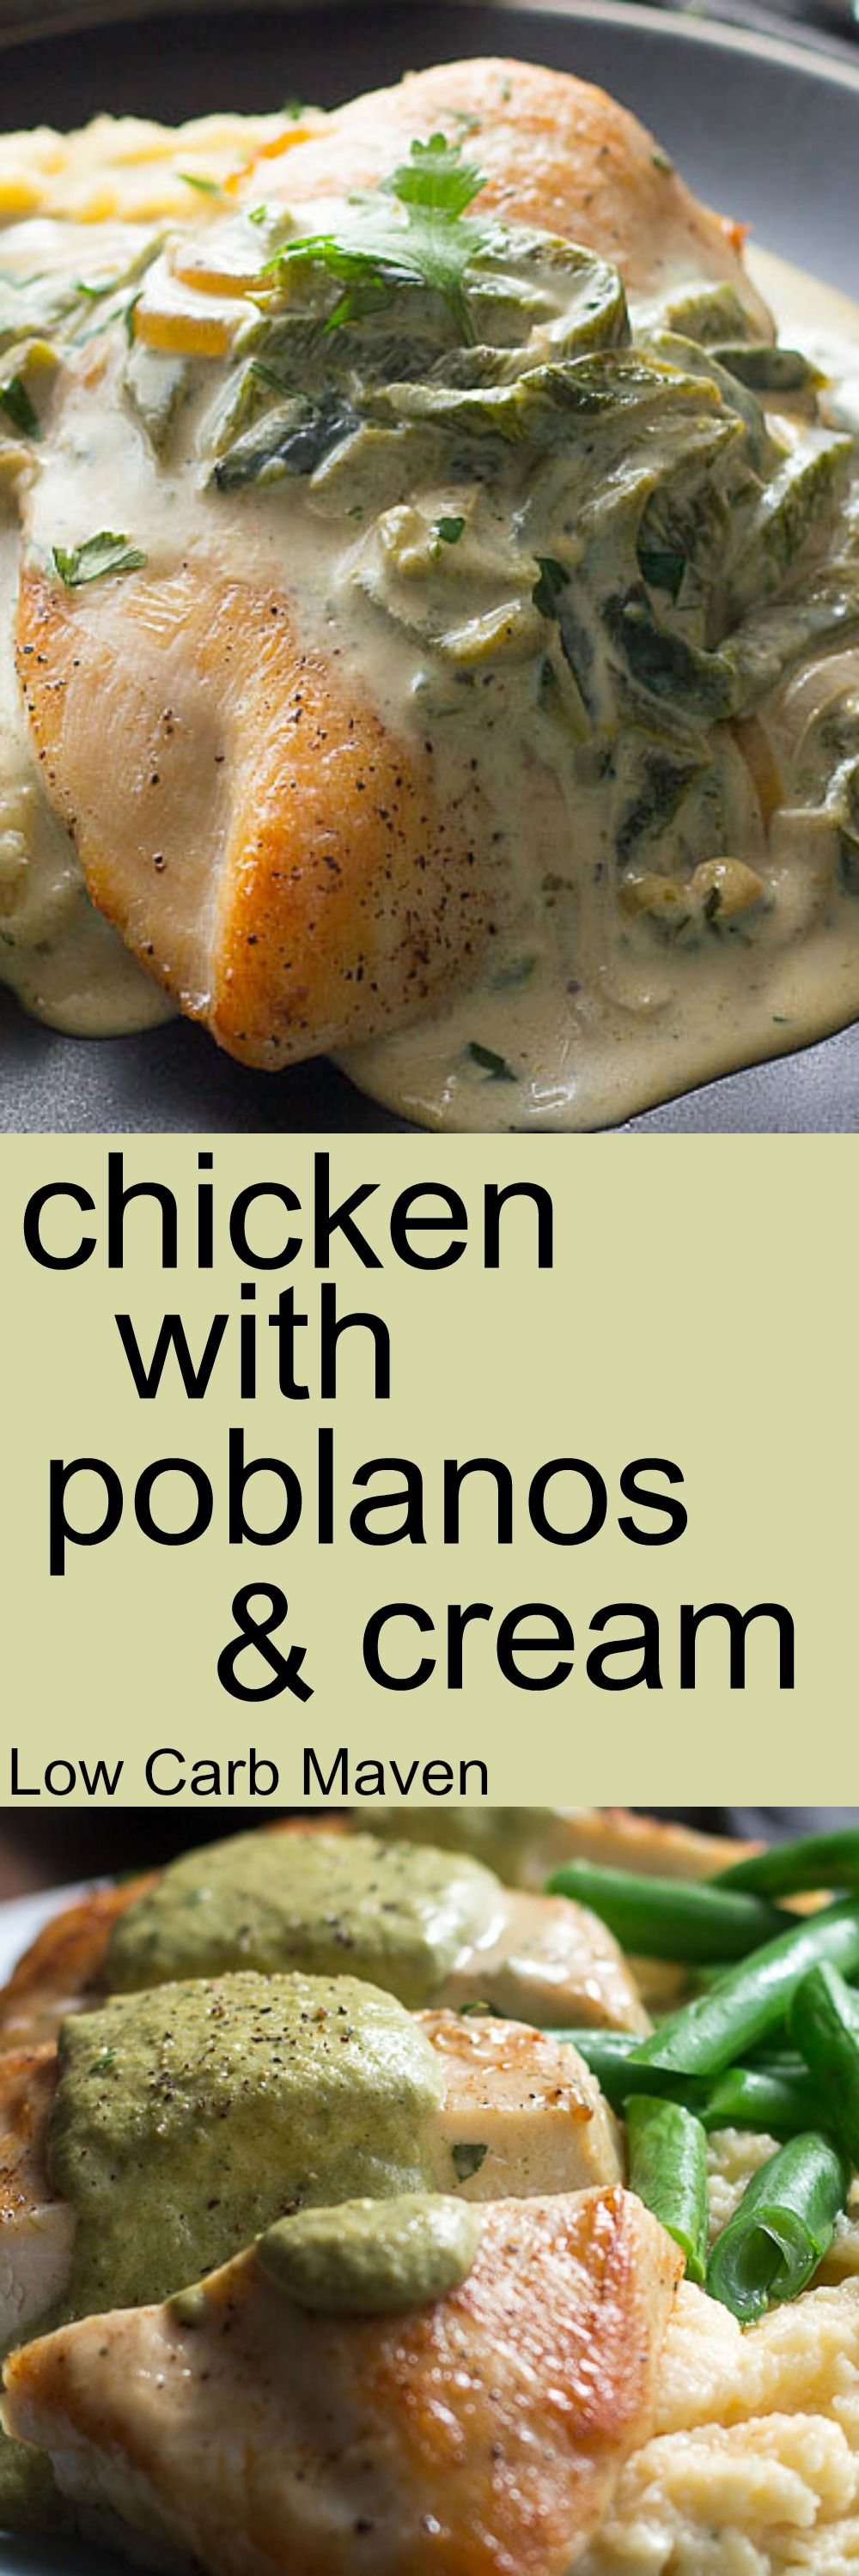 Chicken Roasted Poblano Peppers And Cream Make For A Delicious Low Carb And Keto Dinner